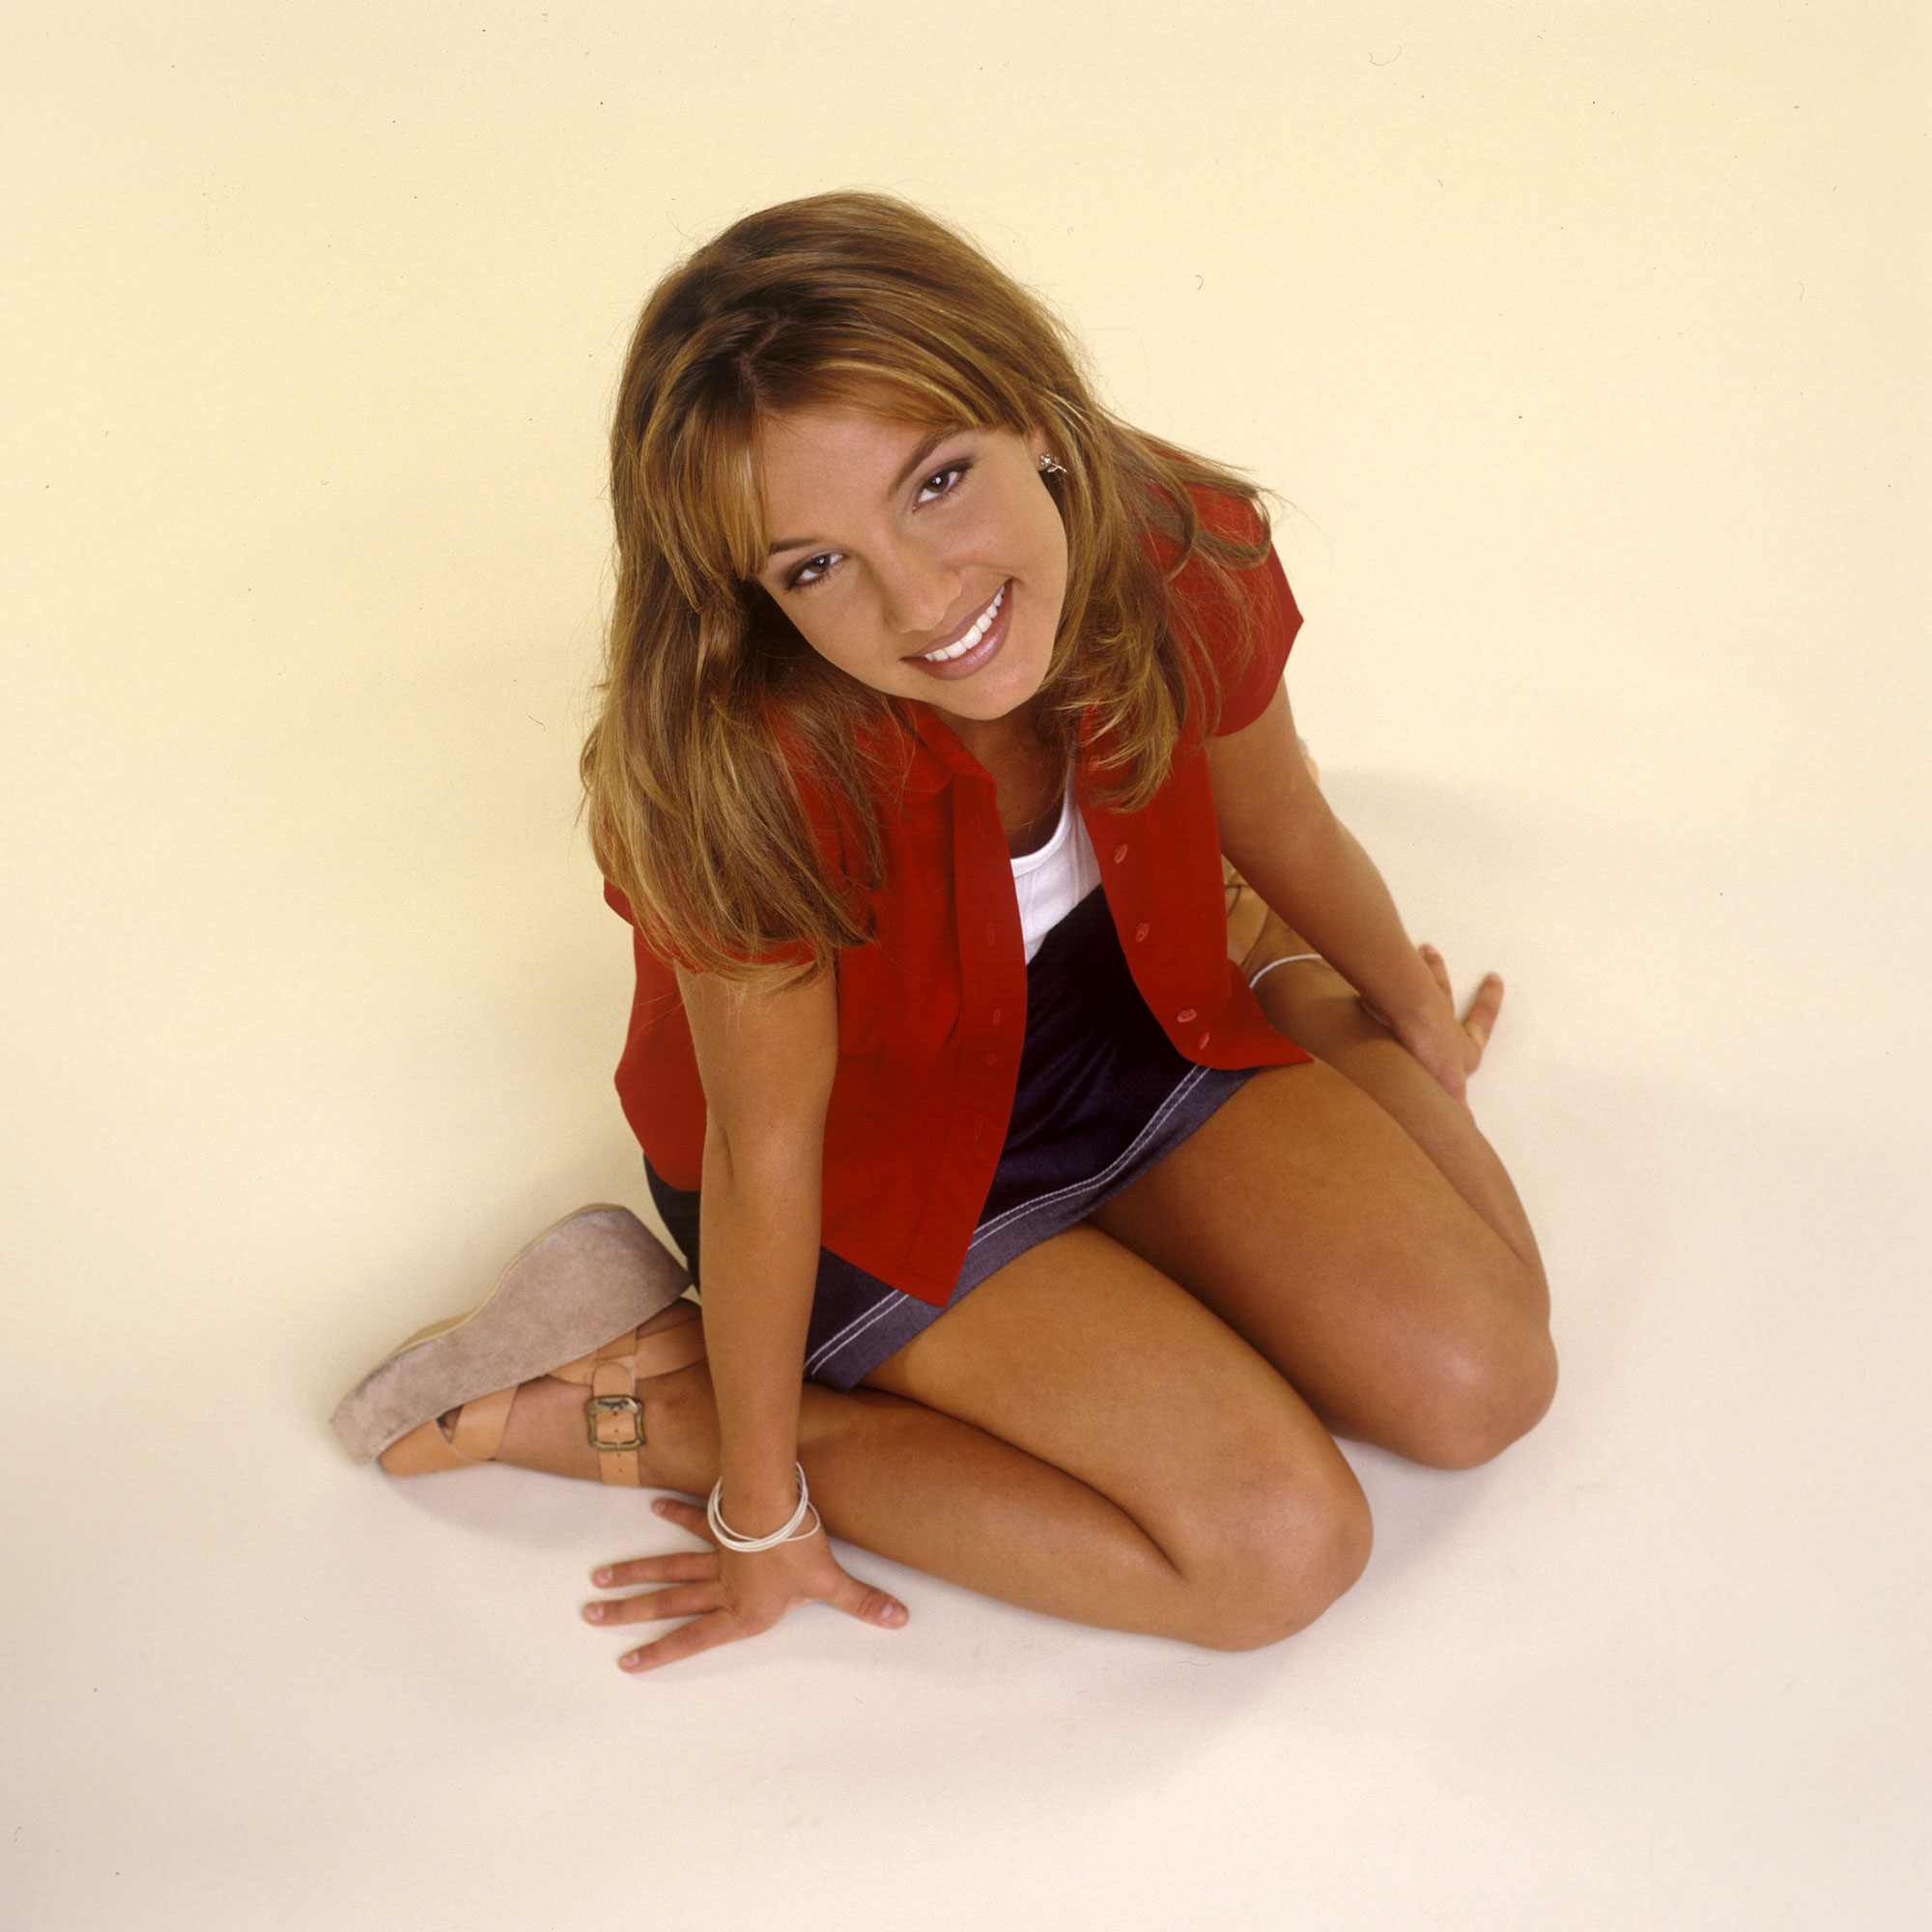 Britney Spears' Ups and Downs gallery - (EXCLUSIVE COVERAGE ? PREMIUM RATES APPLY) Britney Spears poses during a portrait session on October 2, 1998 in Los Angeles, California.